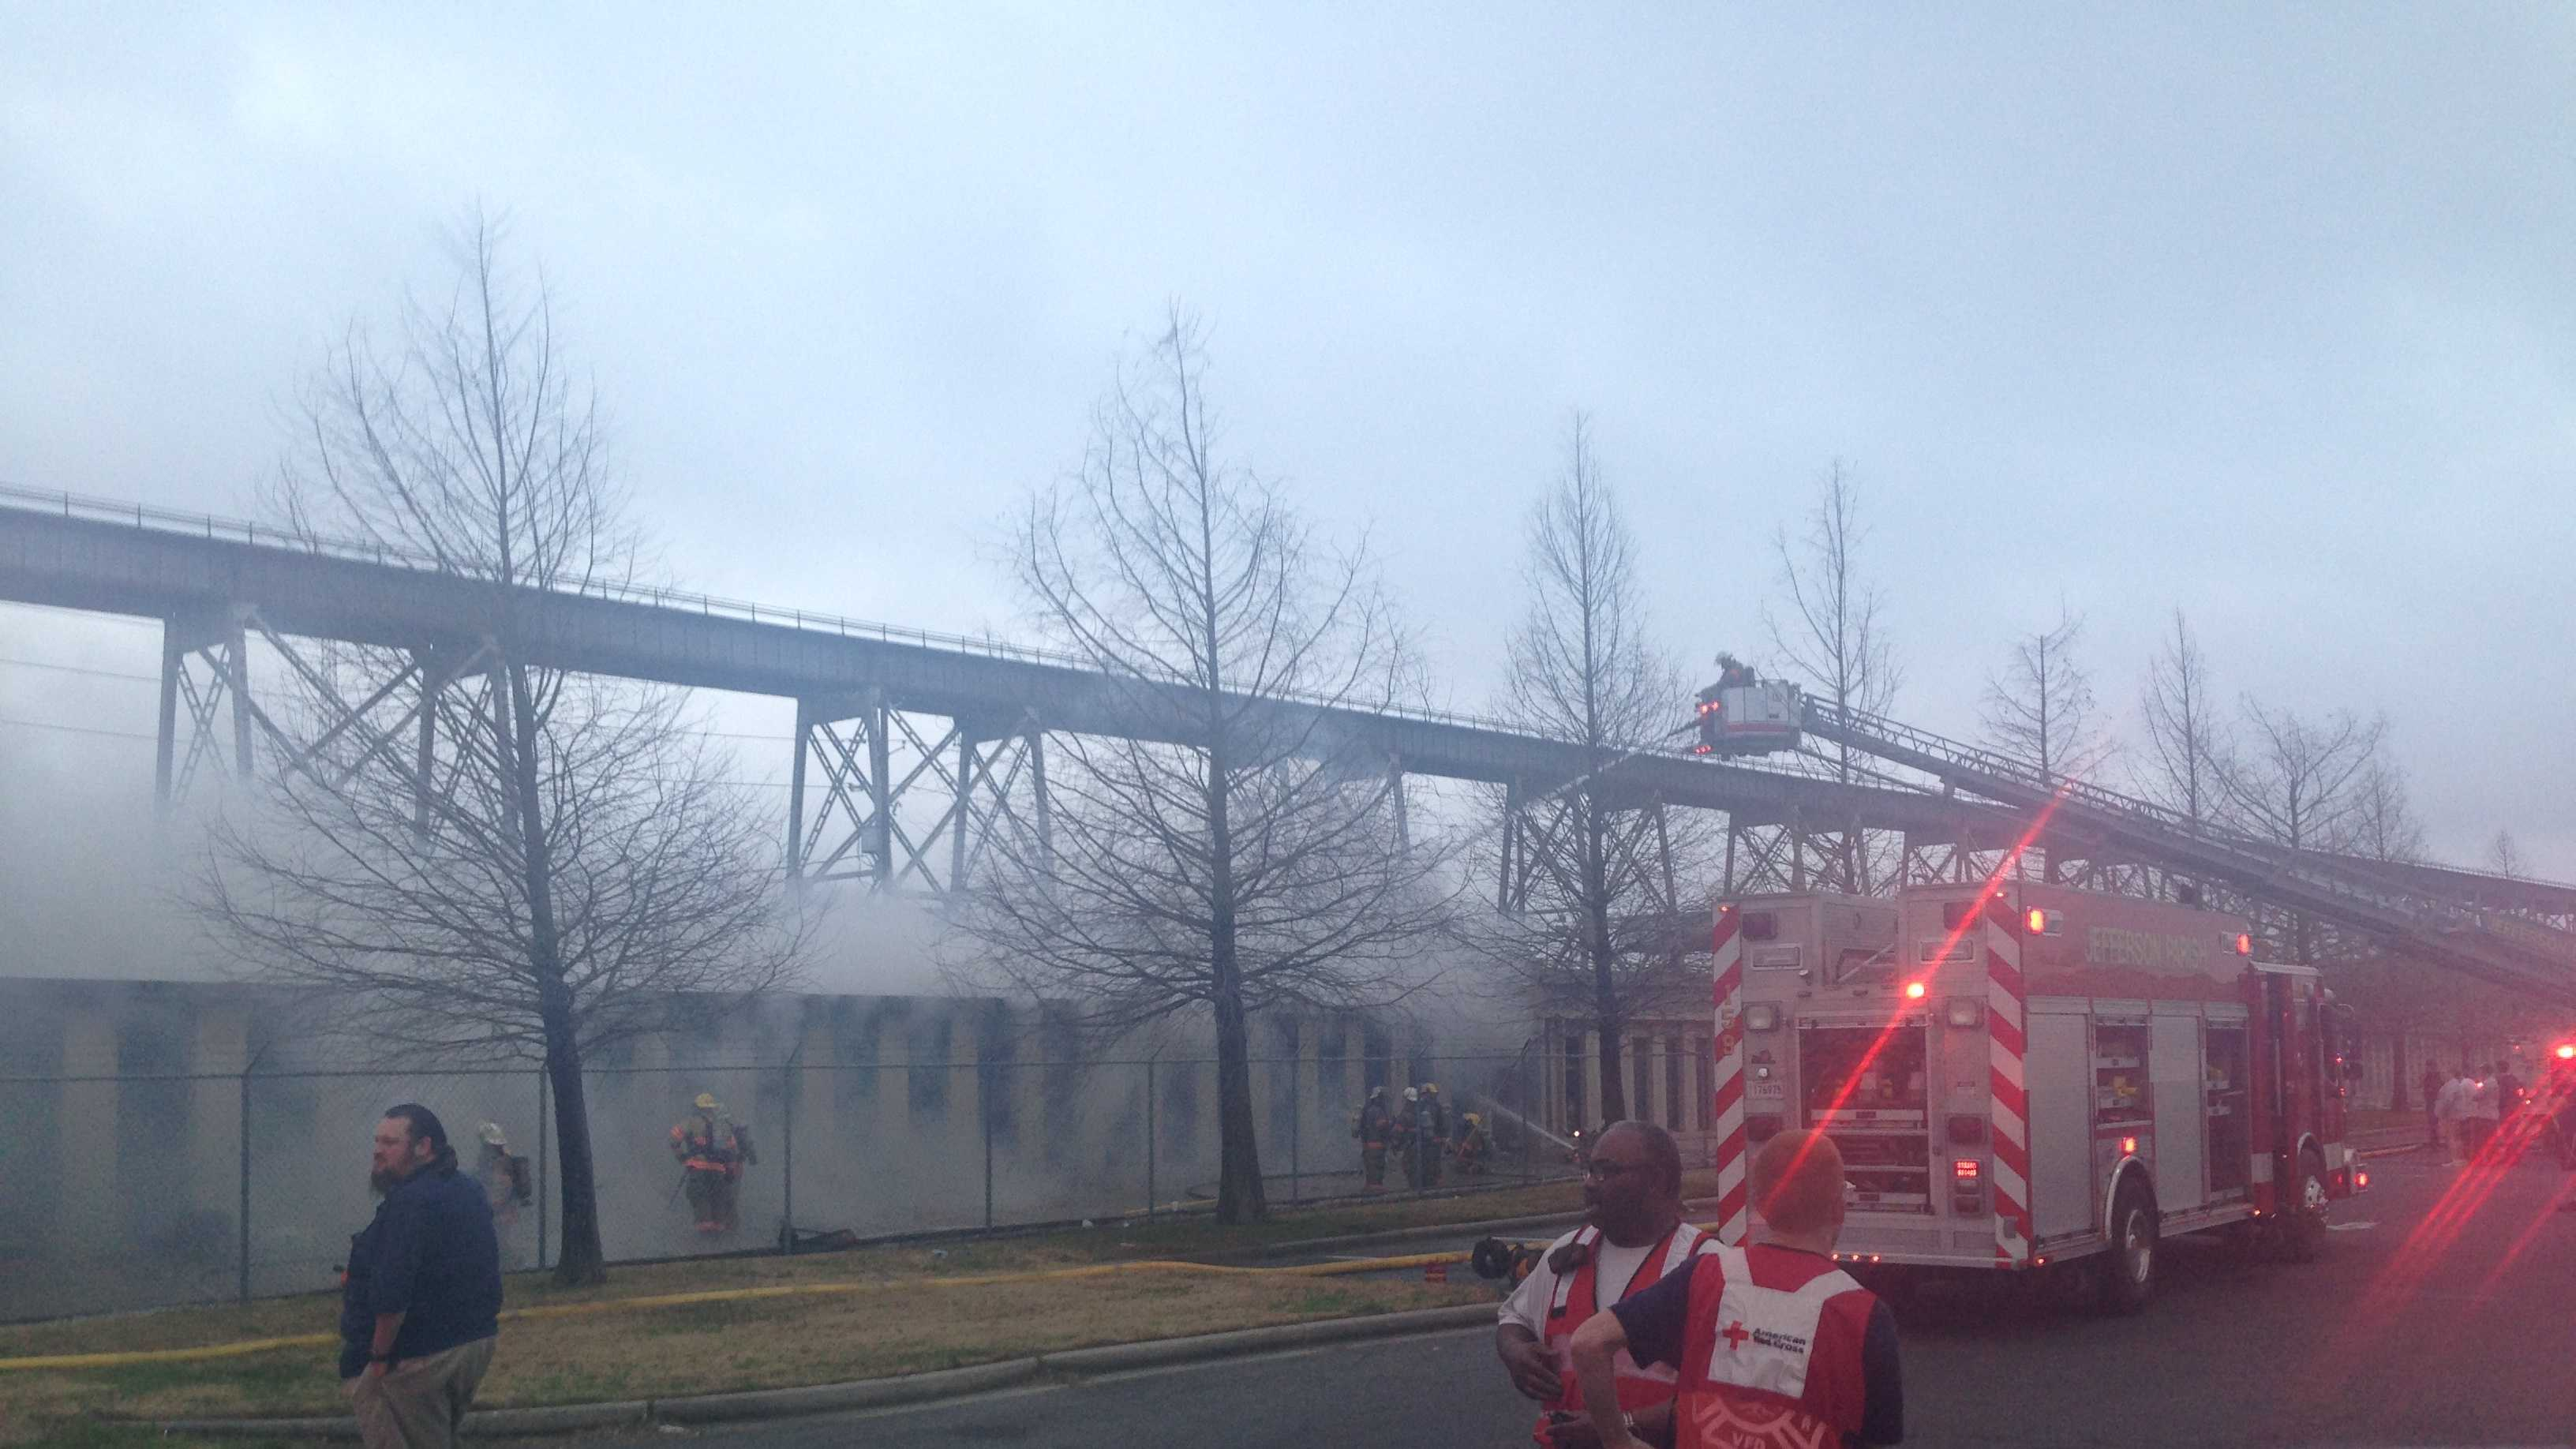 Huey P Bridge structure fire 1.JPG